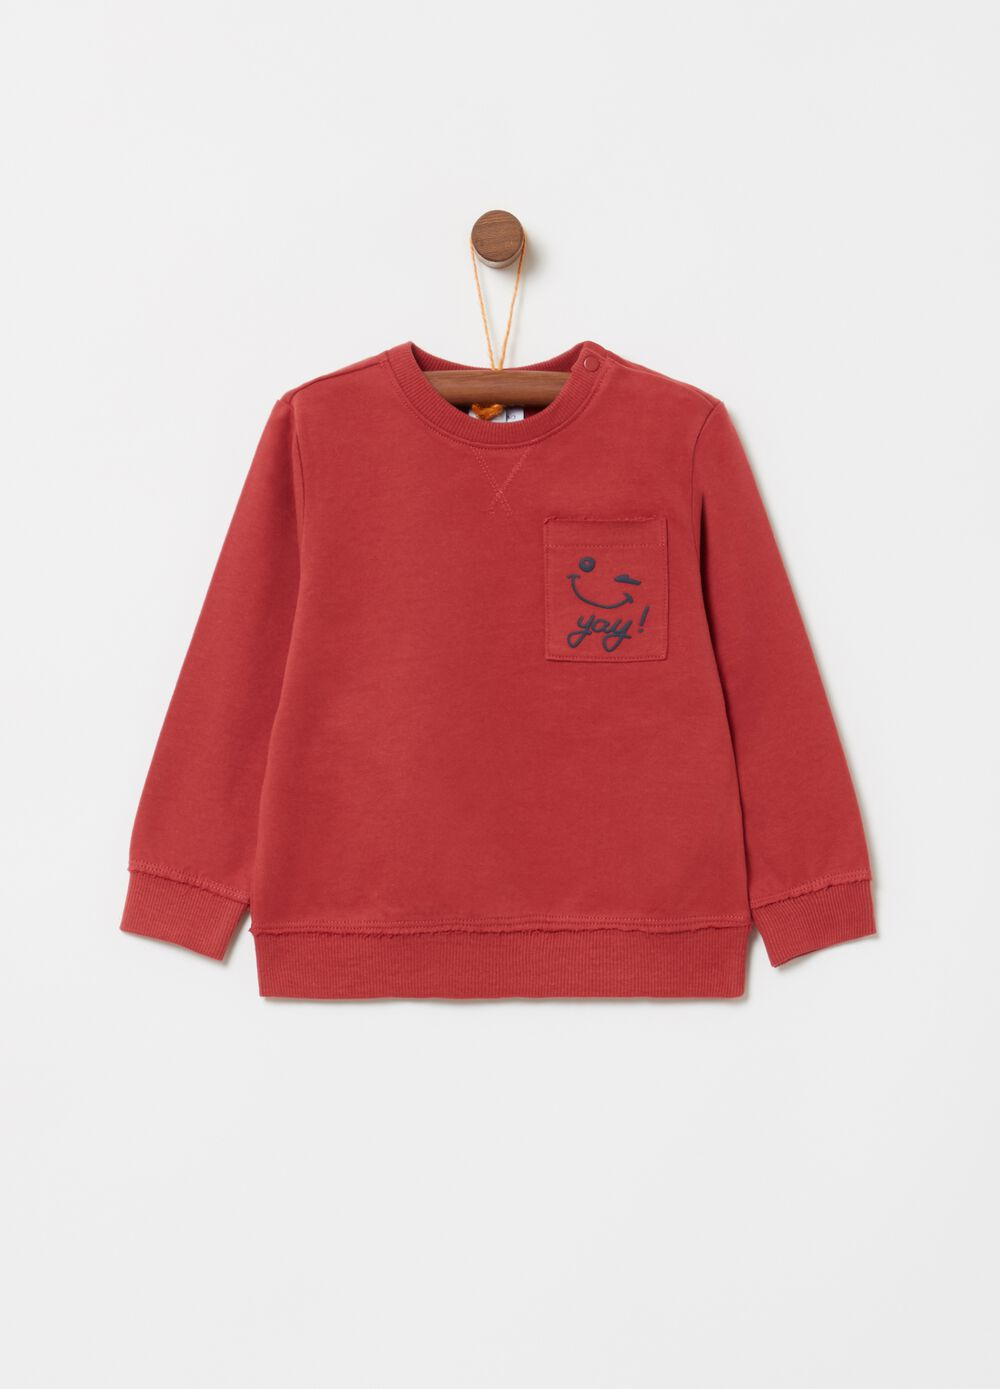 Sweatshirt with small pocket and lettering print